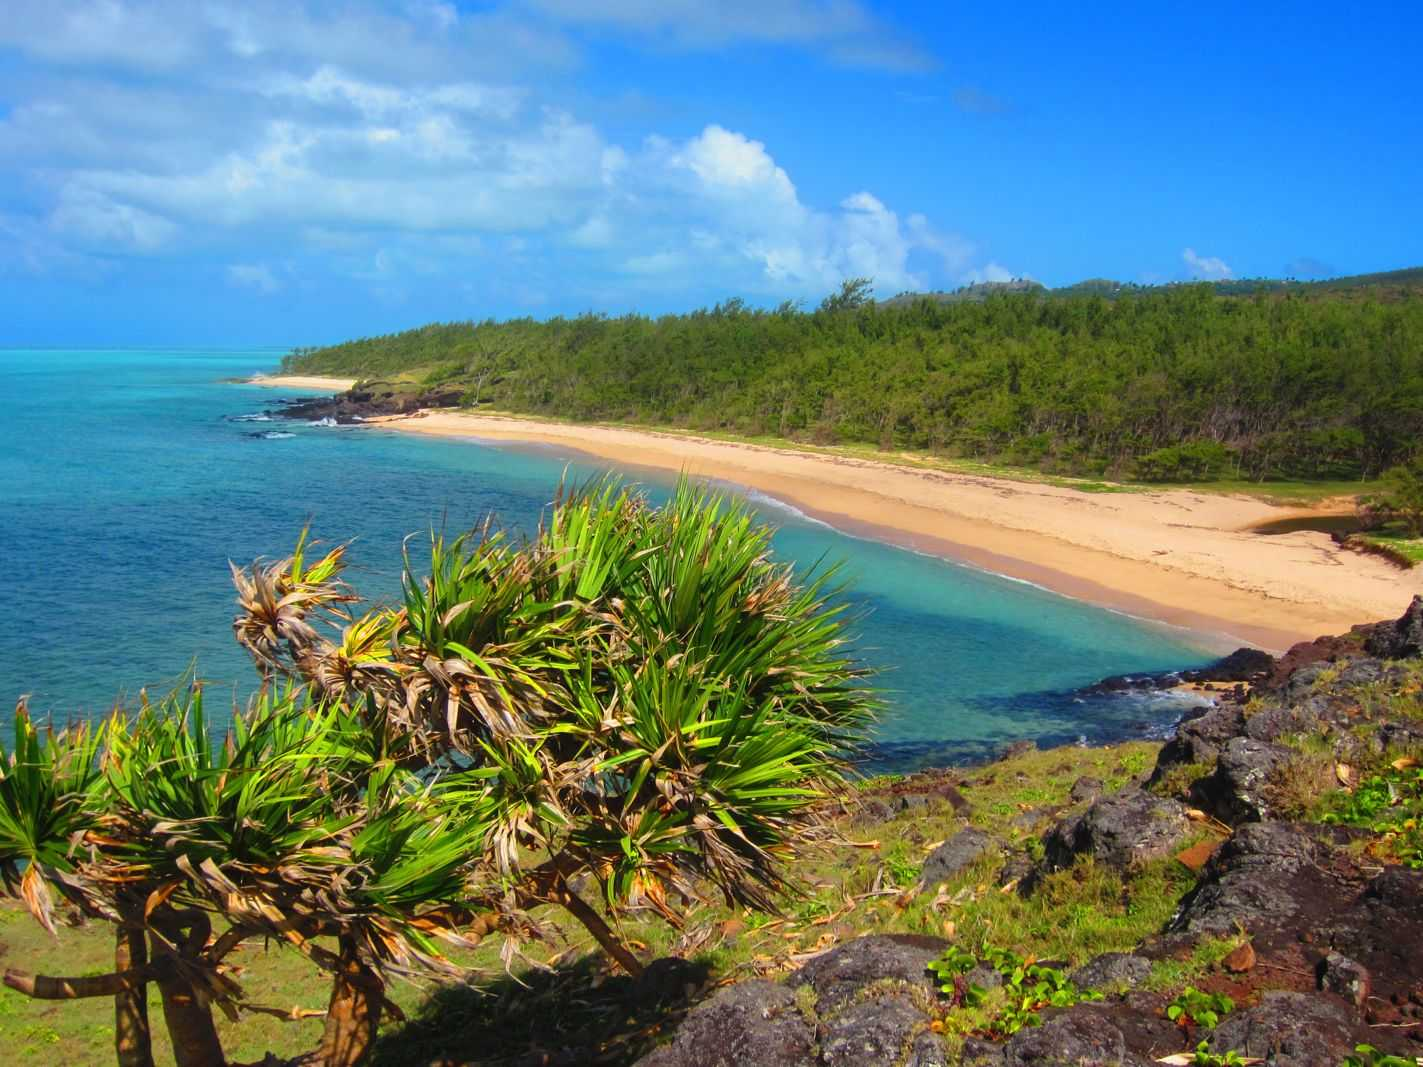 plages sauvages rodrigues